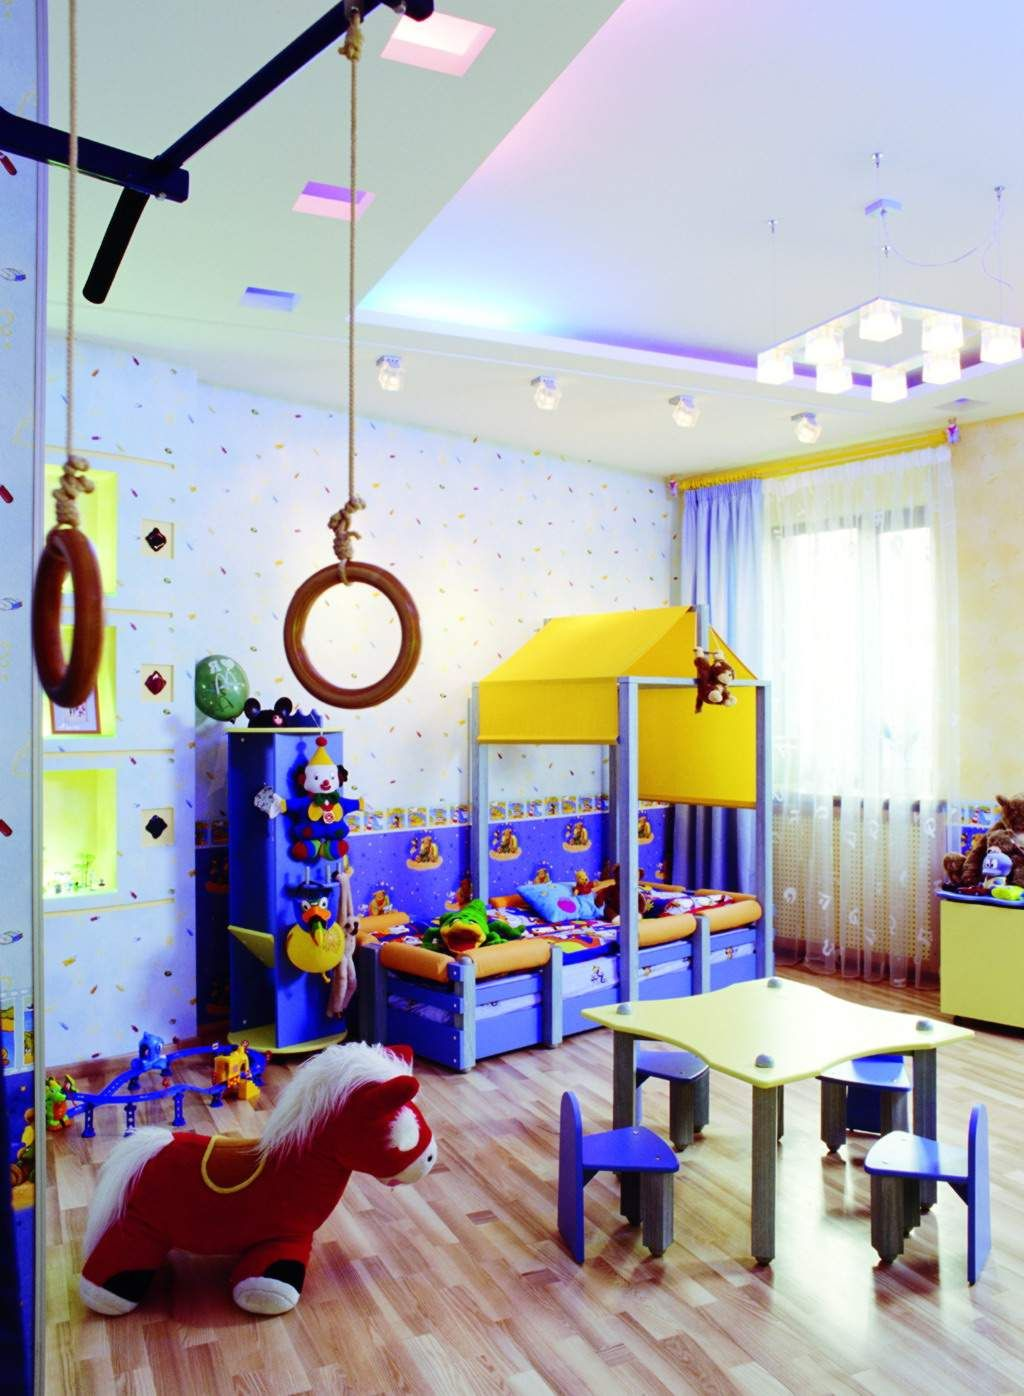 Kids bedroom kids room interior design with play and learn for Ideas for small bedrooms for kids